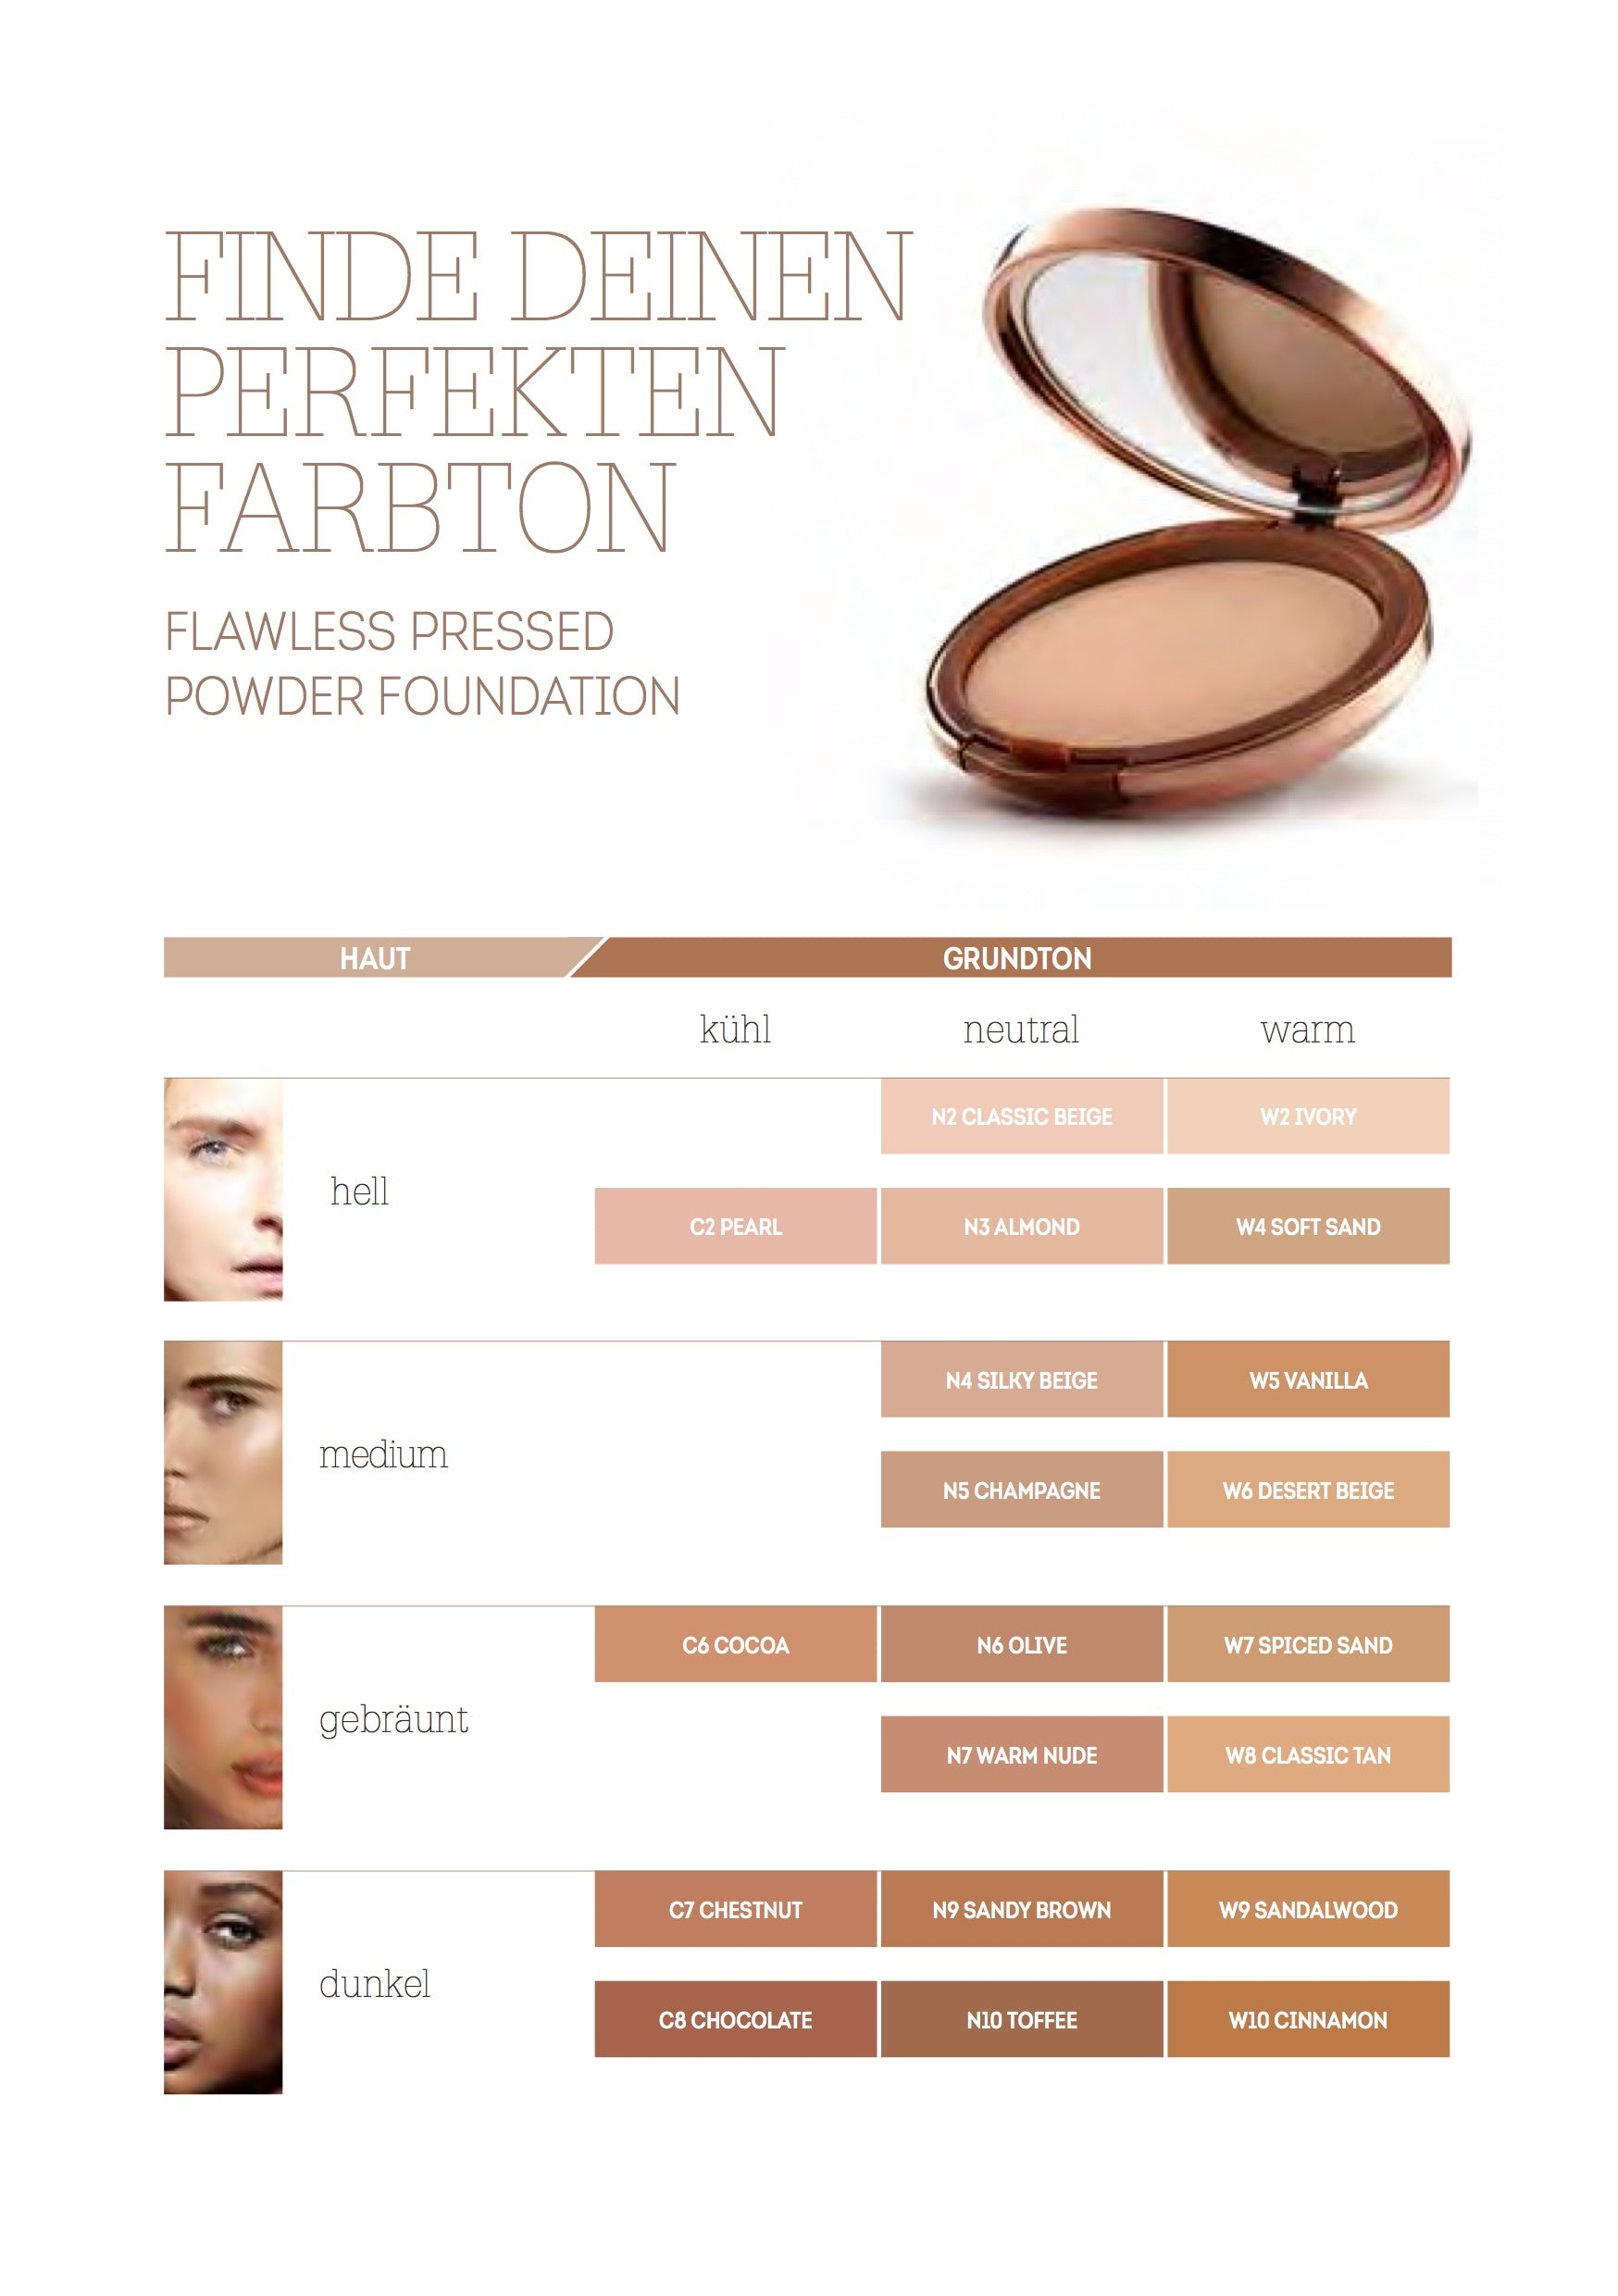 Flawless Pressed Powder Foundation Shade Guide